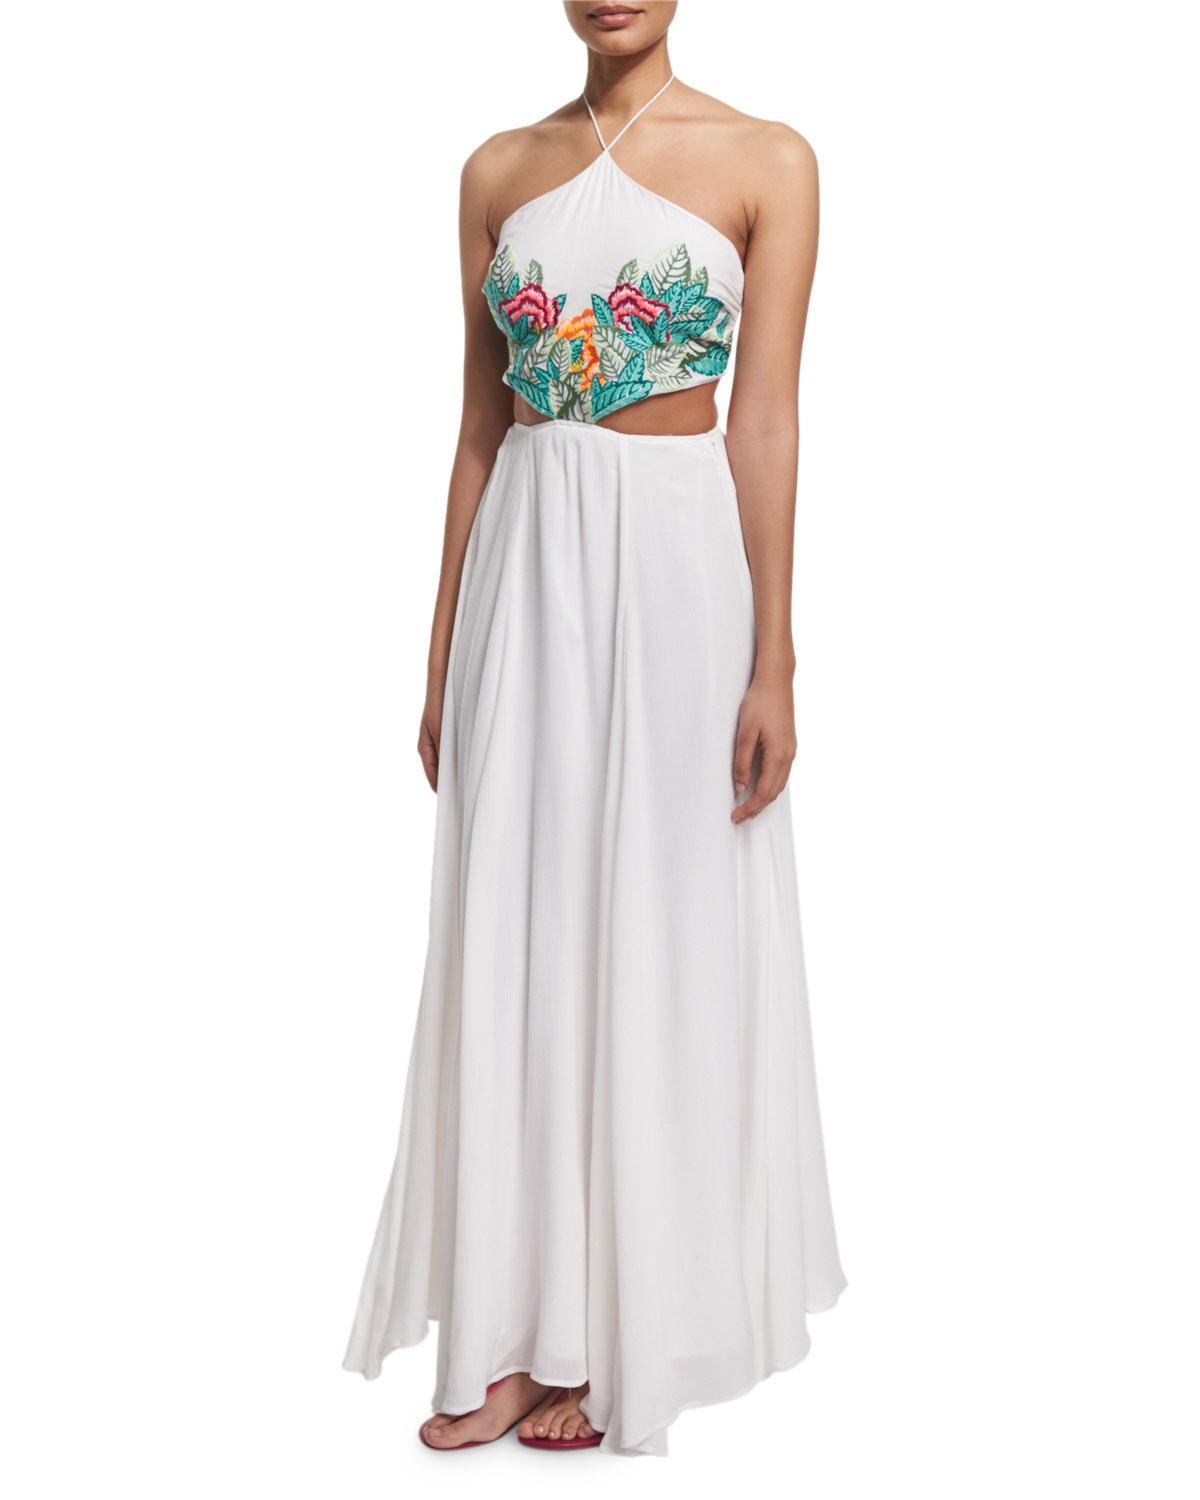 Mara hoffman embroidered leaf cutout maxi dress in floral